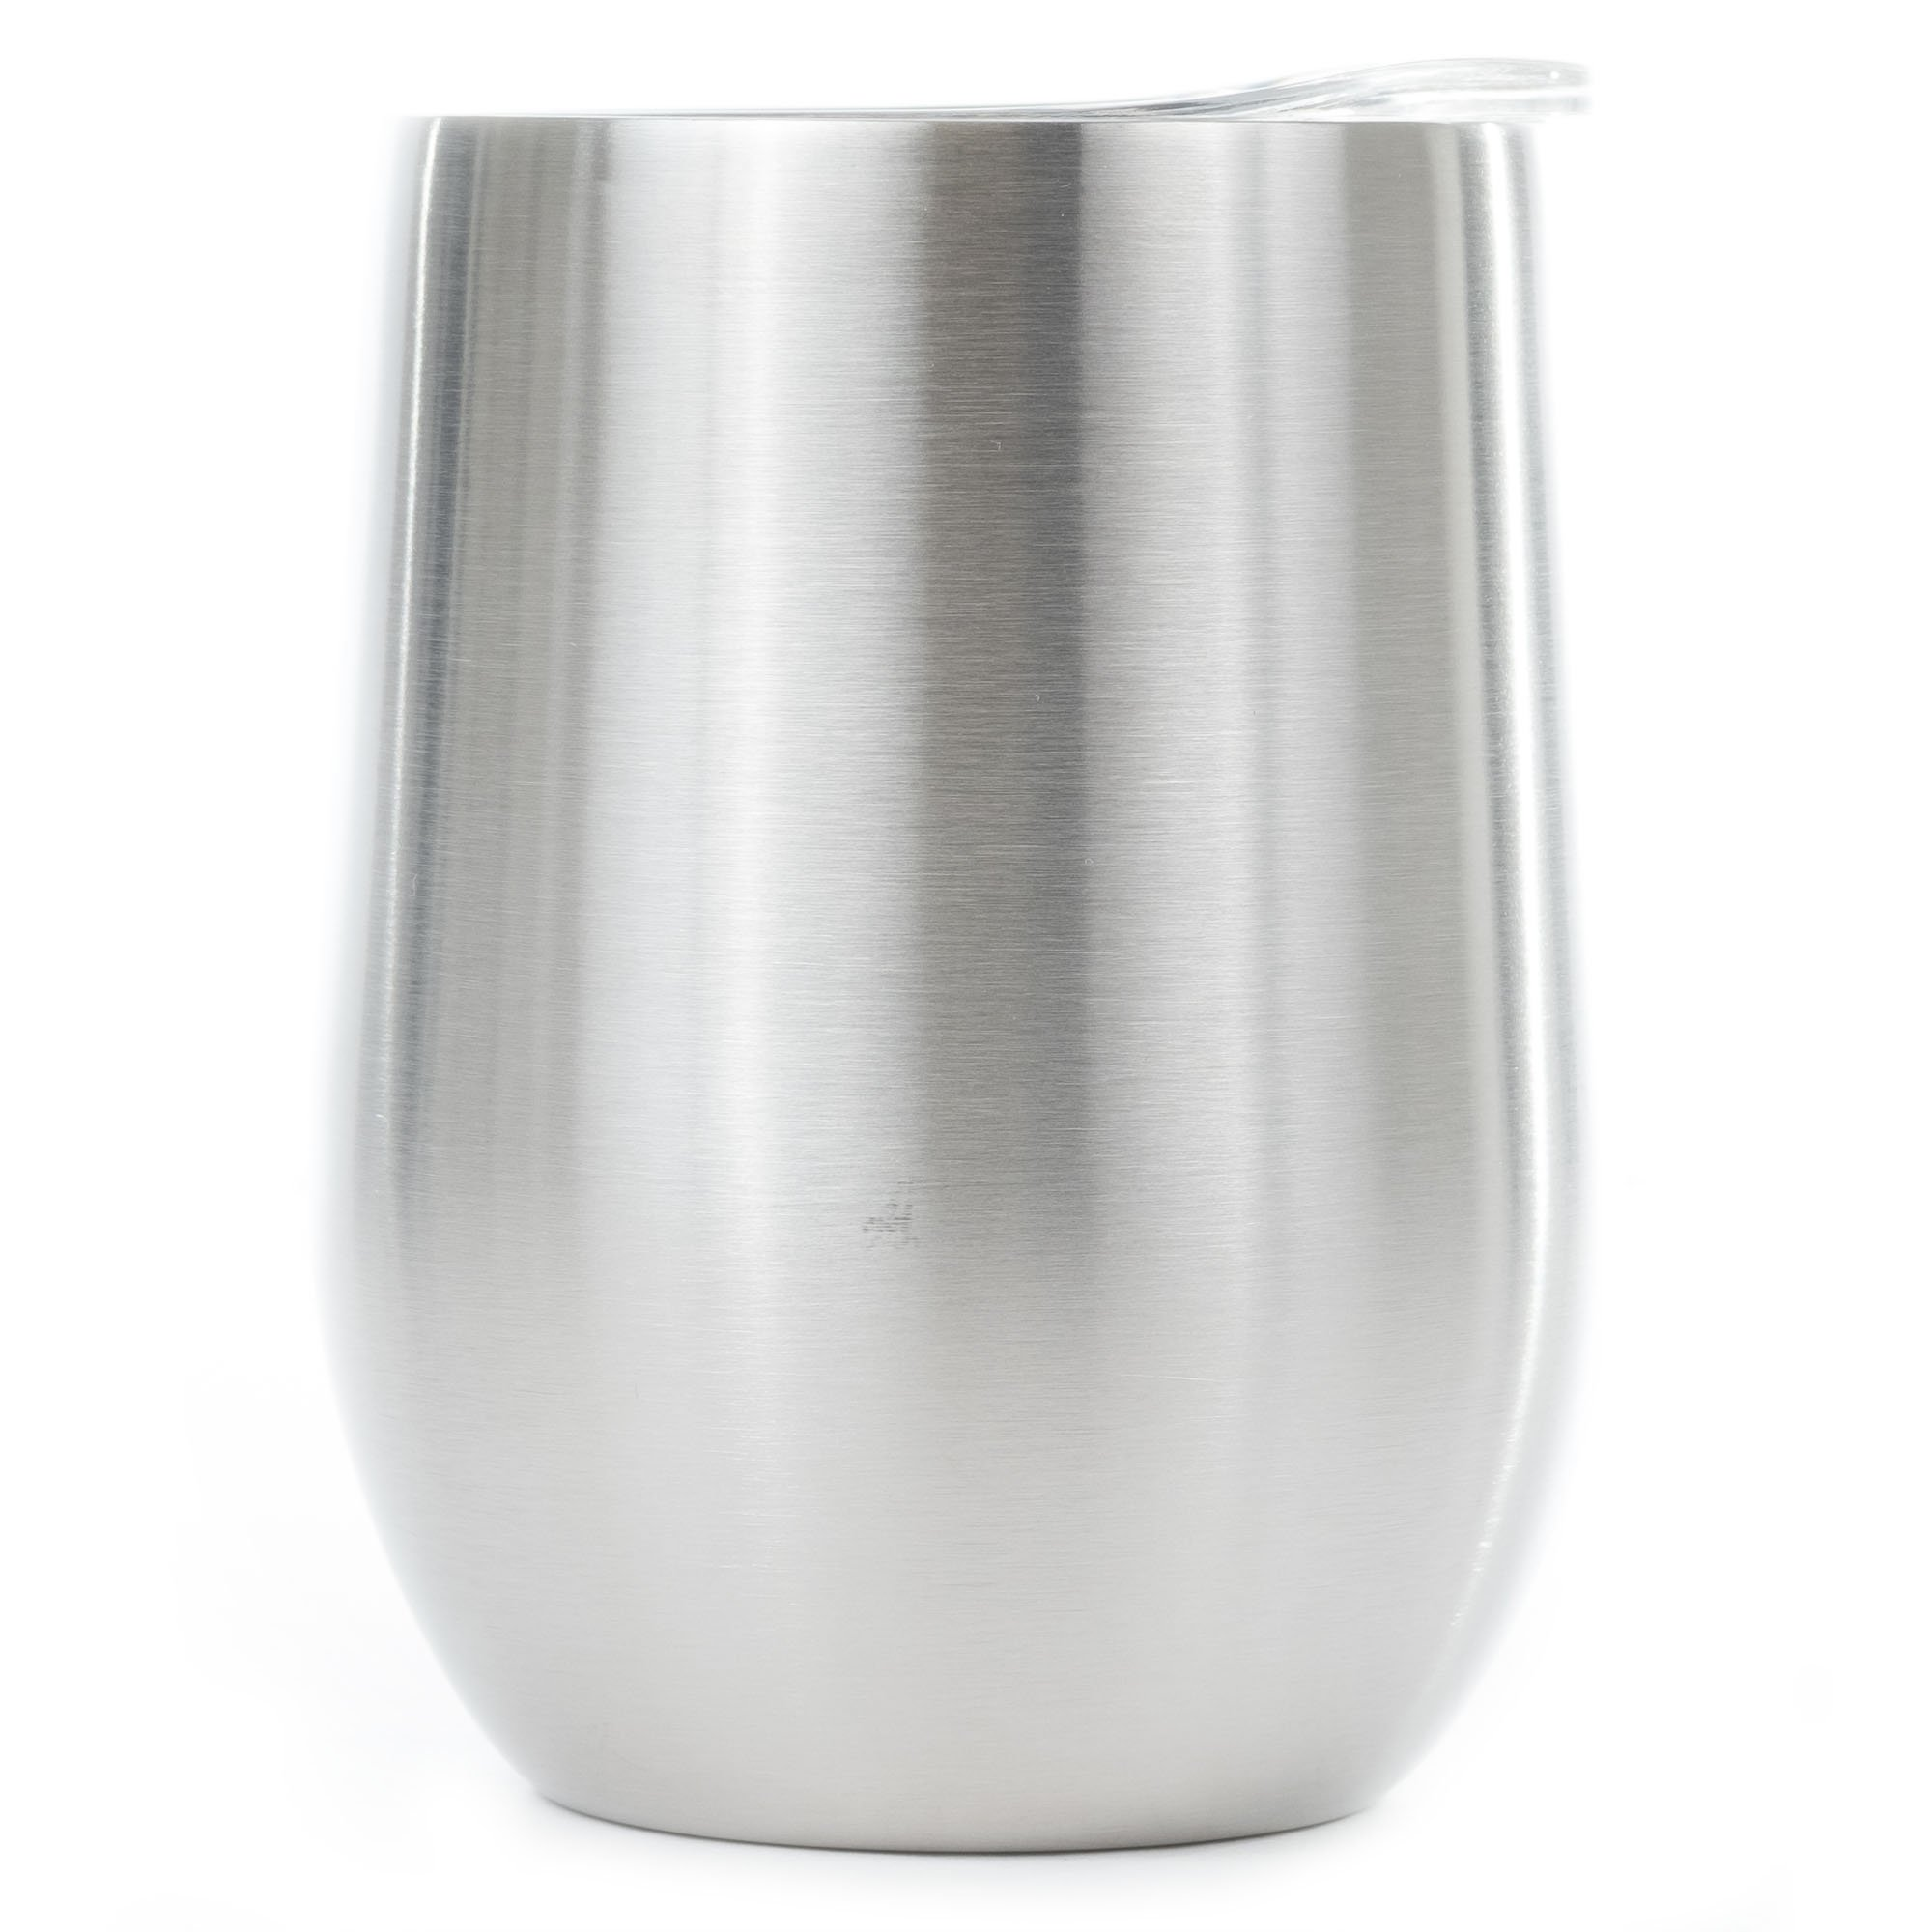 12 oz Stemless Stainless Steel Wine Tumbler - Dual Wall Vacuum Insulated - Ideal for Red Wine, Liquors and other beverages - Keeps Ice Cold and Hot